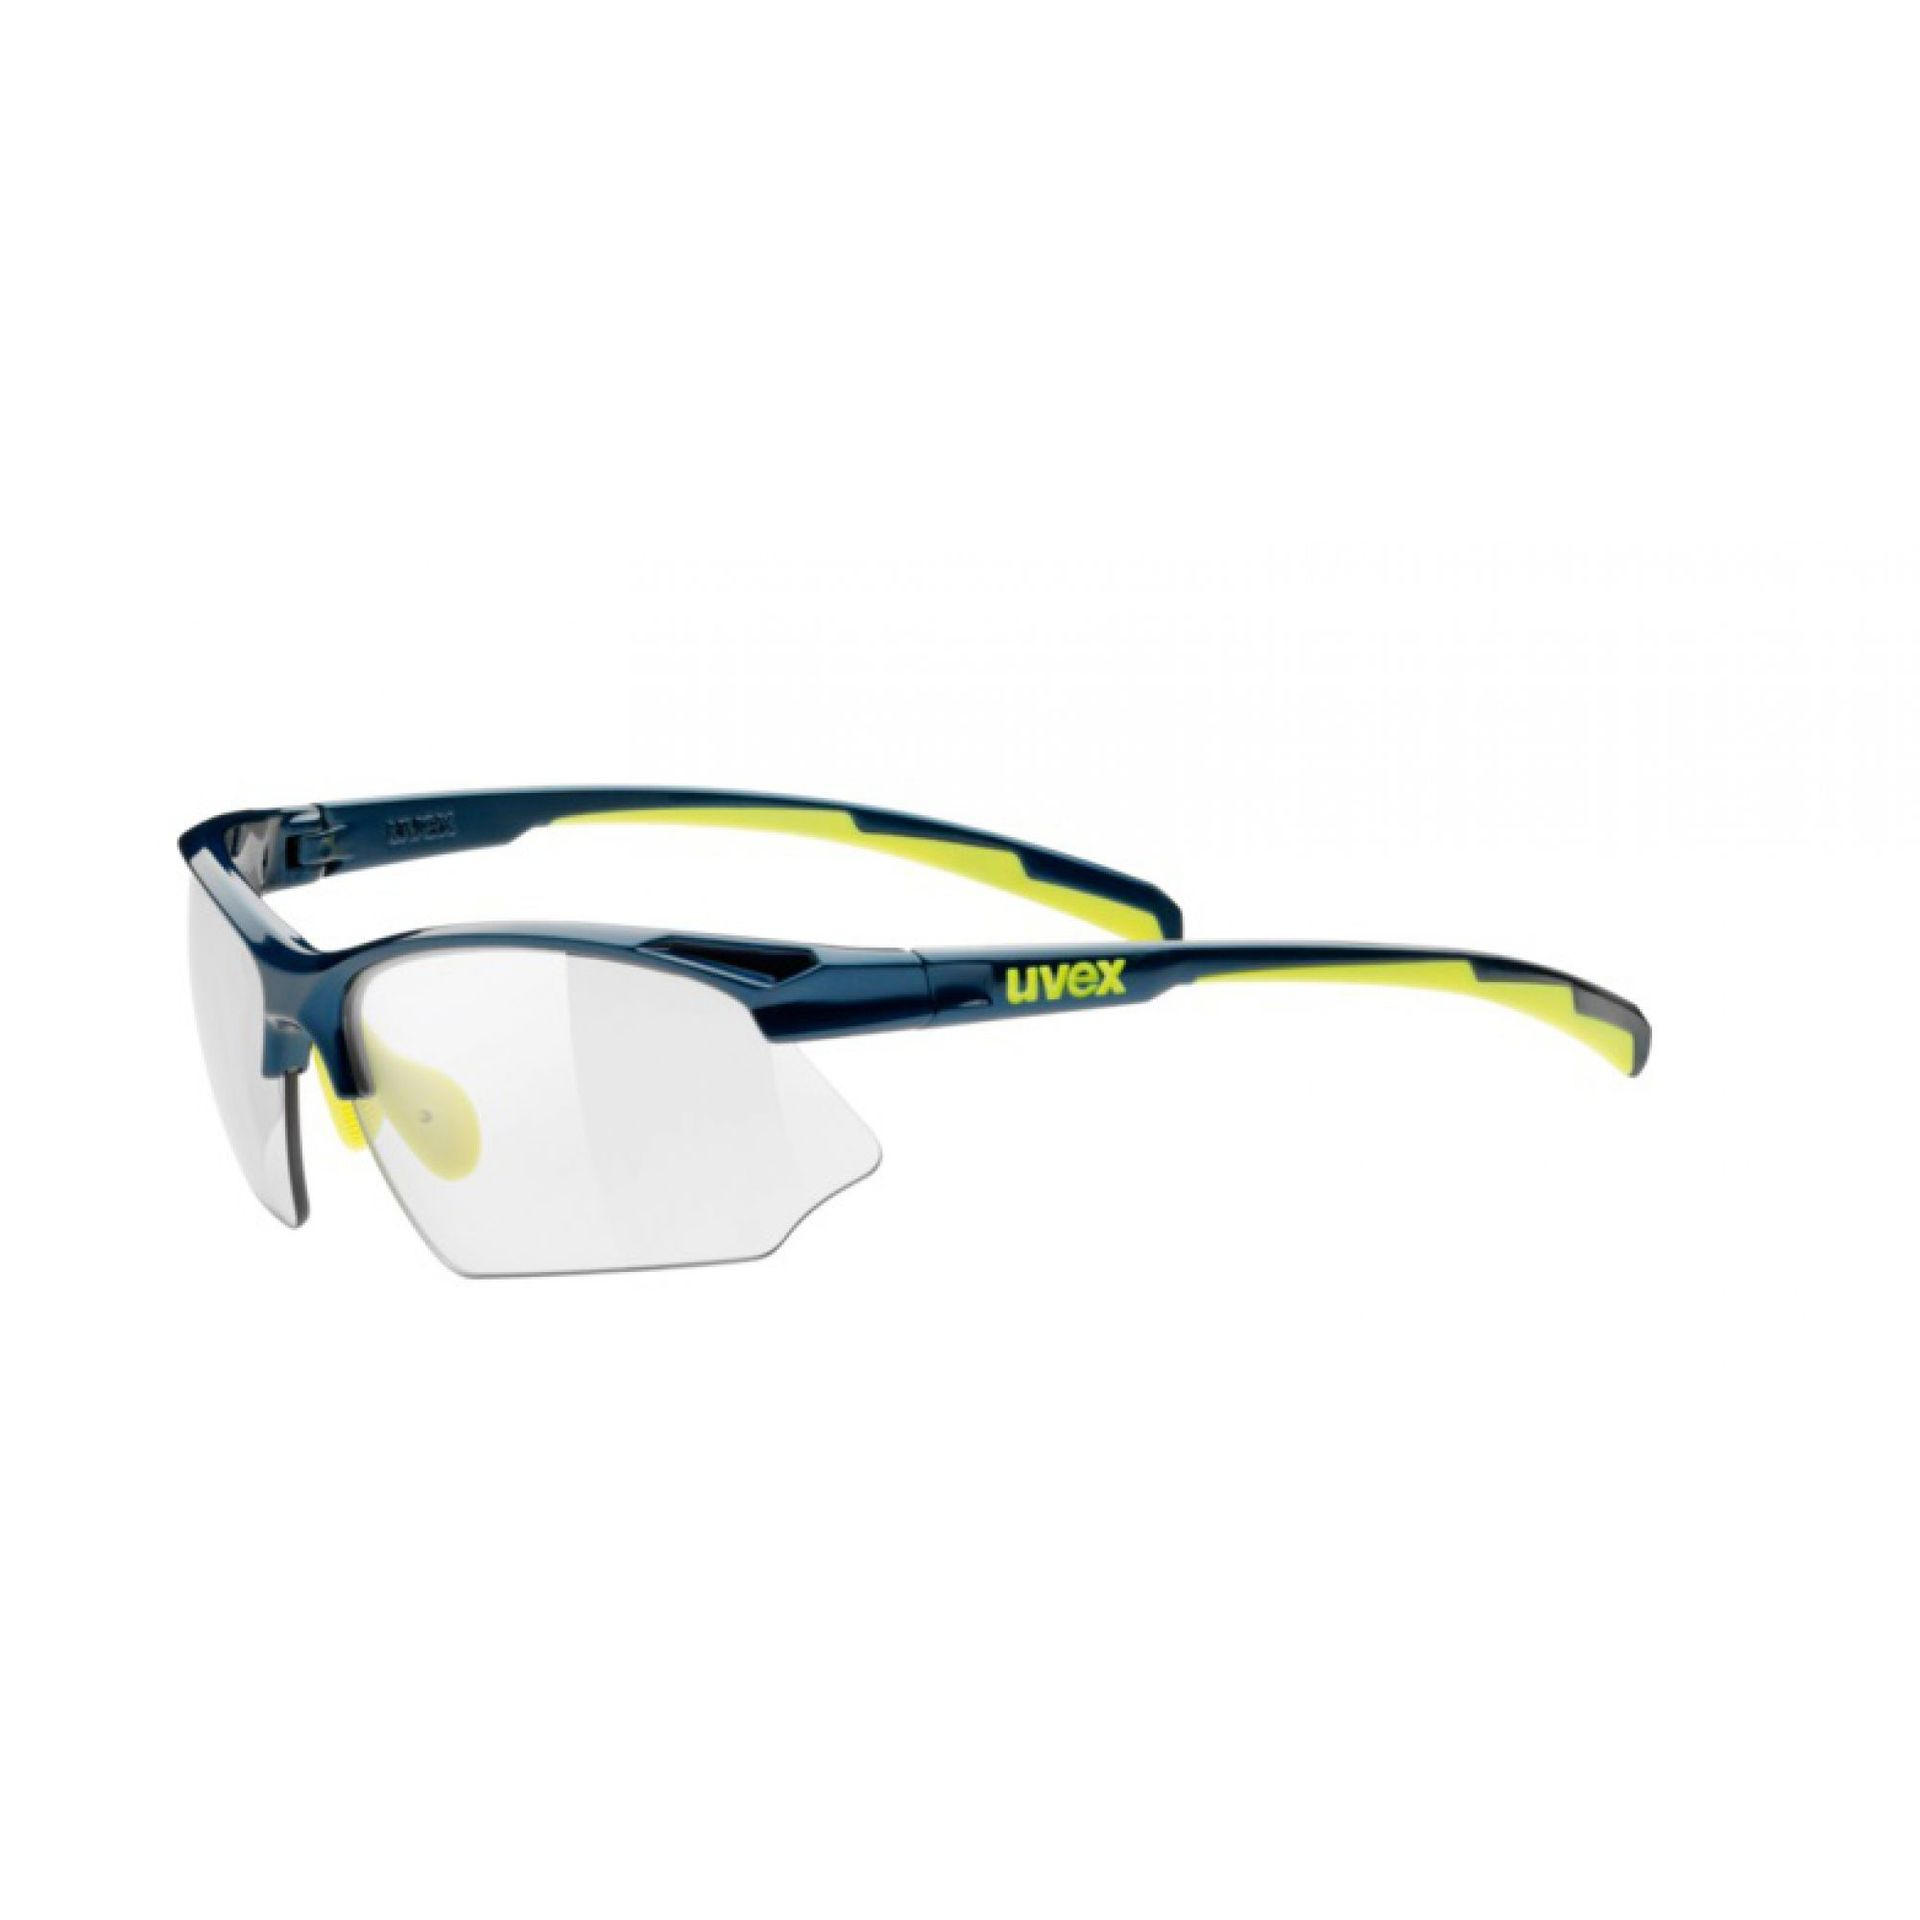 OKULARY UVEX SPORTSTYLE 802 VARIO DARK BLUE YELLOW